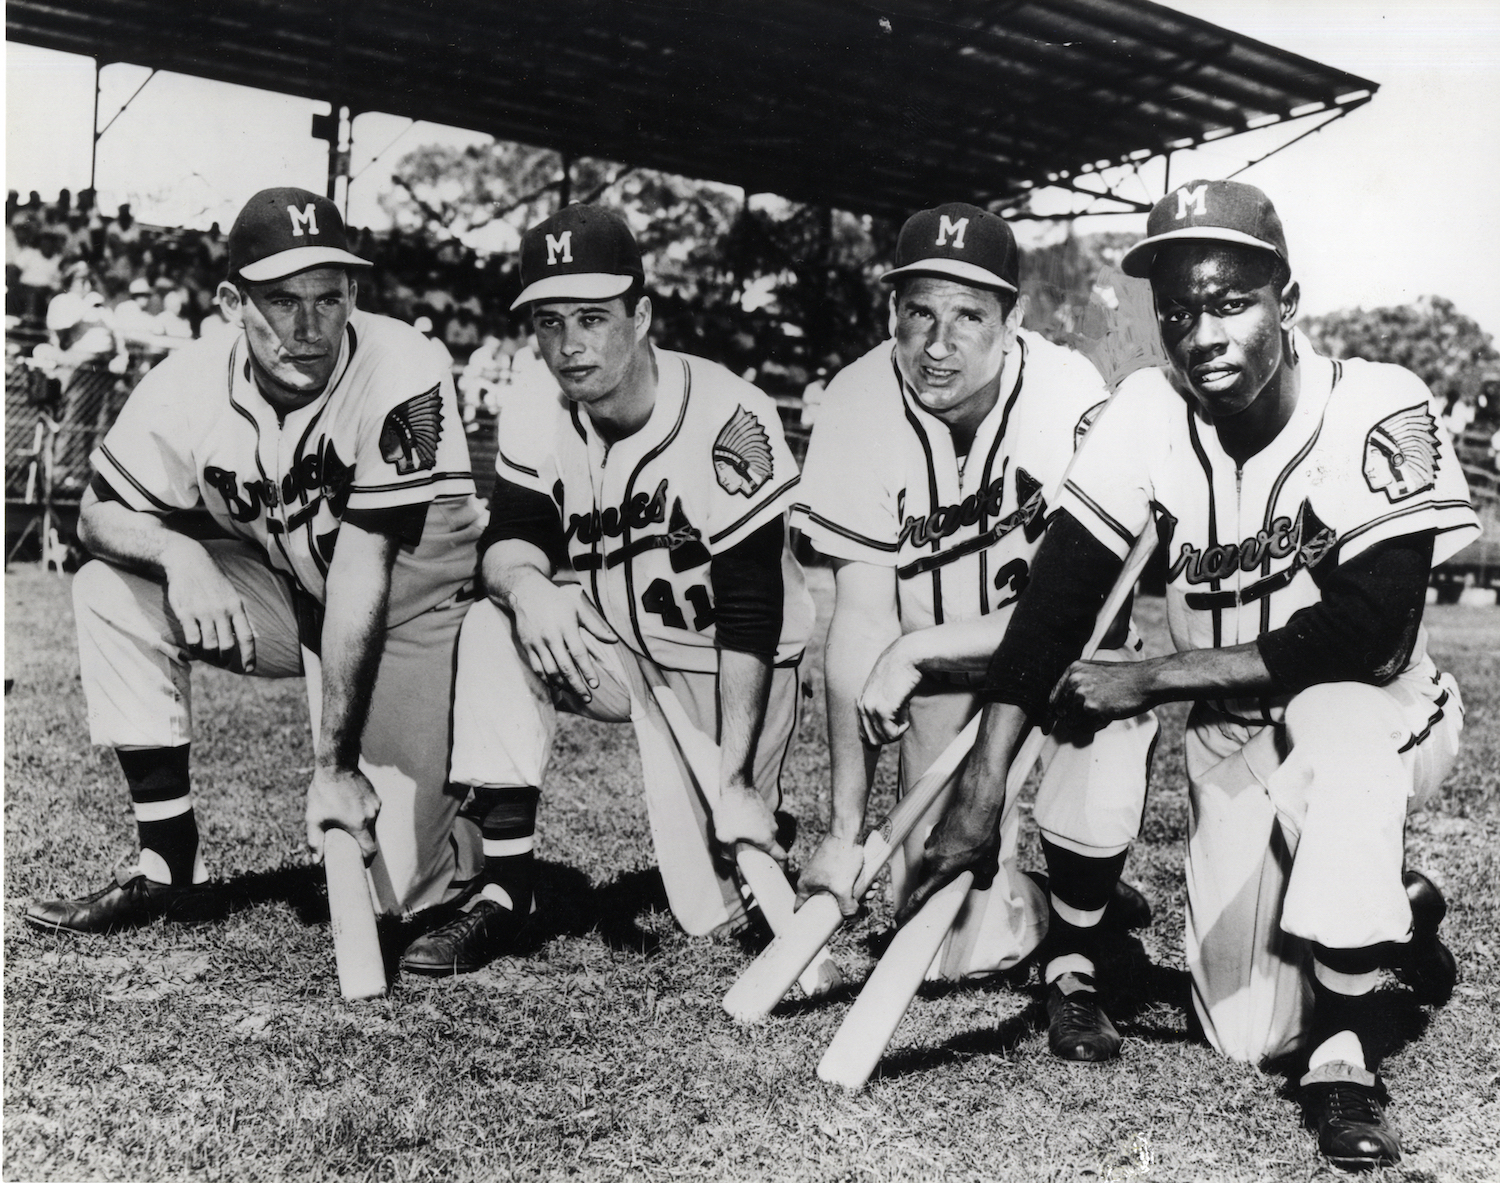 Photograph featuring, from left to right, Joe Adcock, Eddie Mathews, Bobby Thomson, and Hank Aaron of the 1957 Braves at spring training.